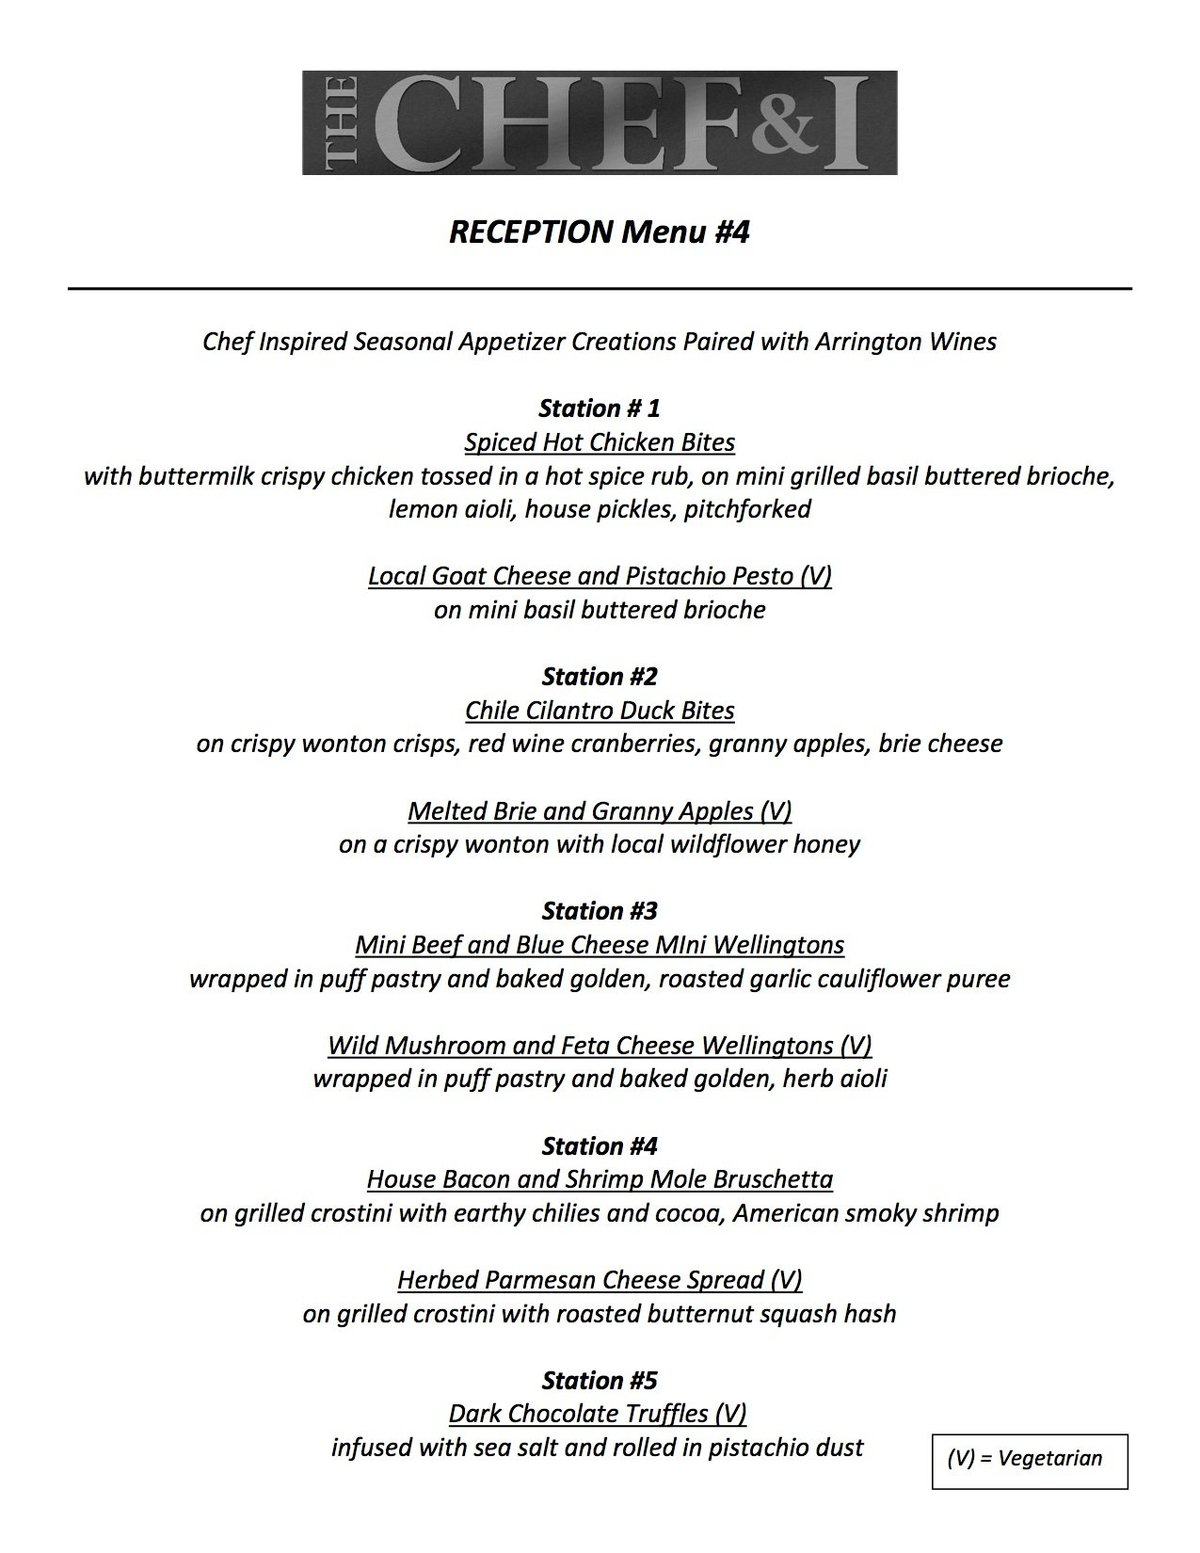 Reception Menu 4